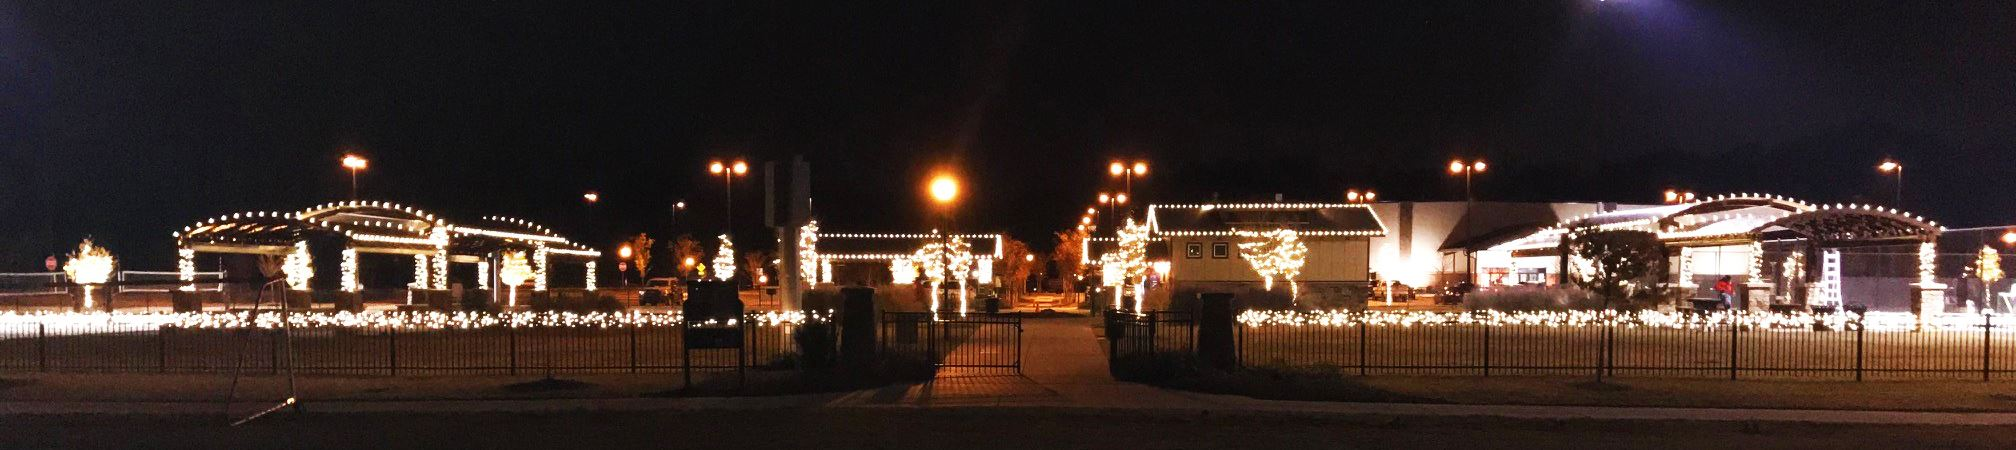 Christmas lights at Chestnut Square Park